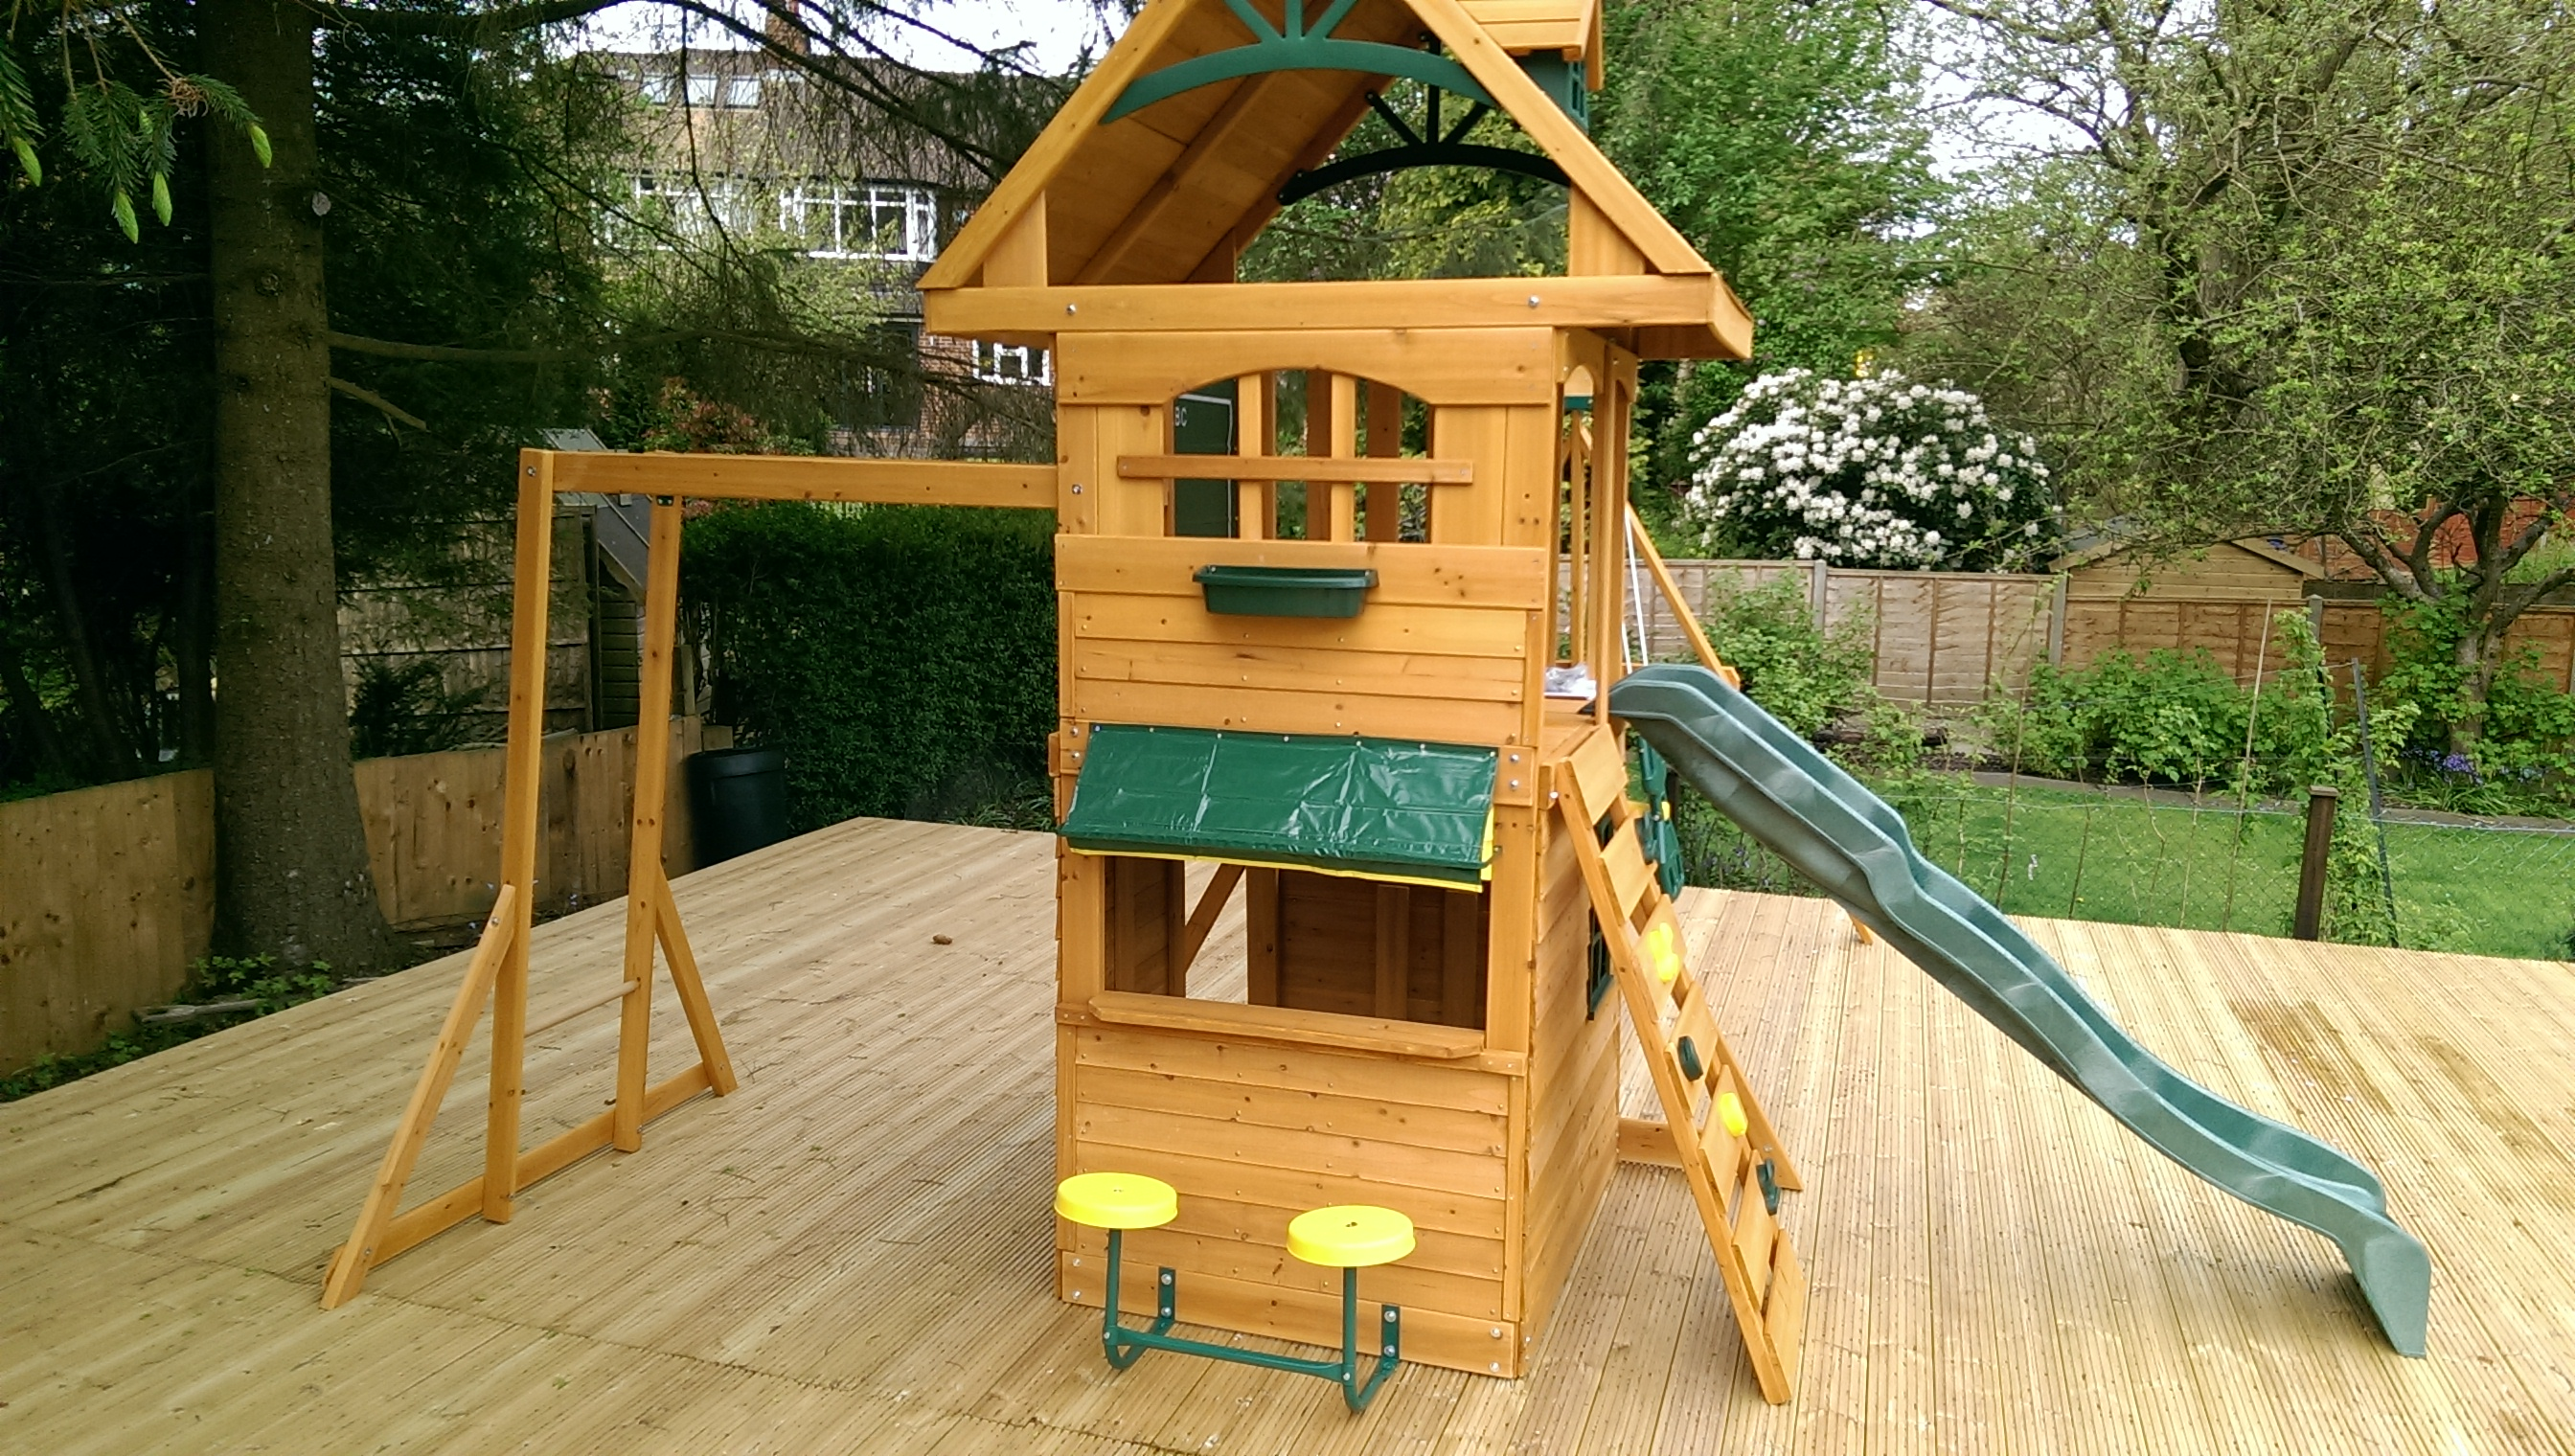 The Selwood Ridgeview Deluxe Play Frame